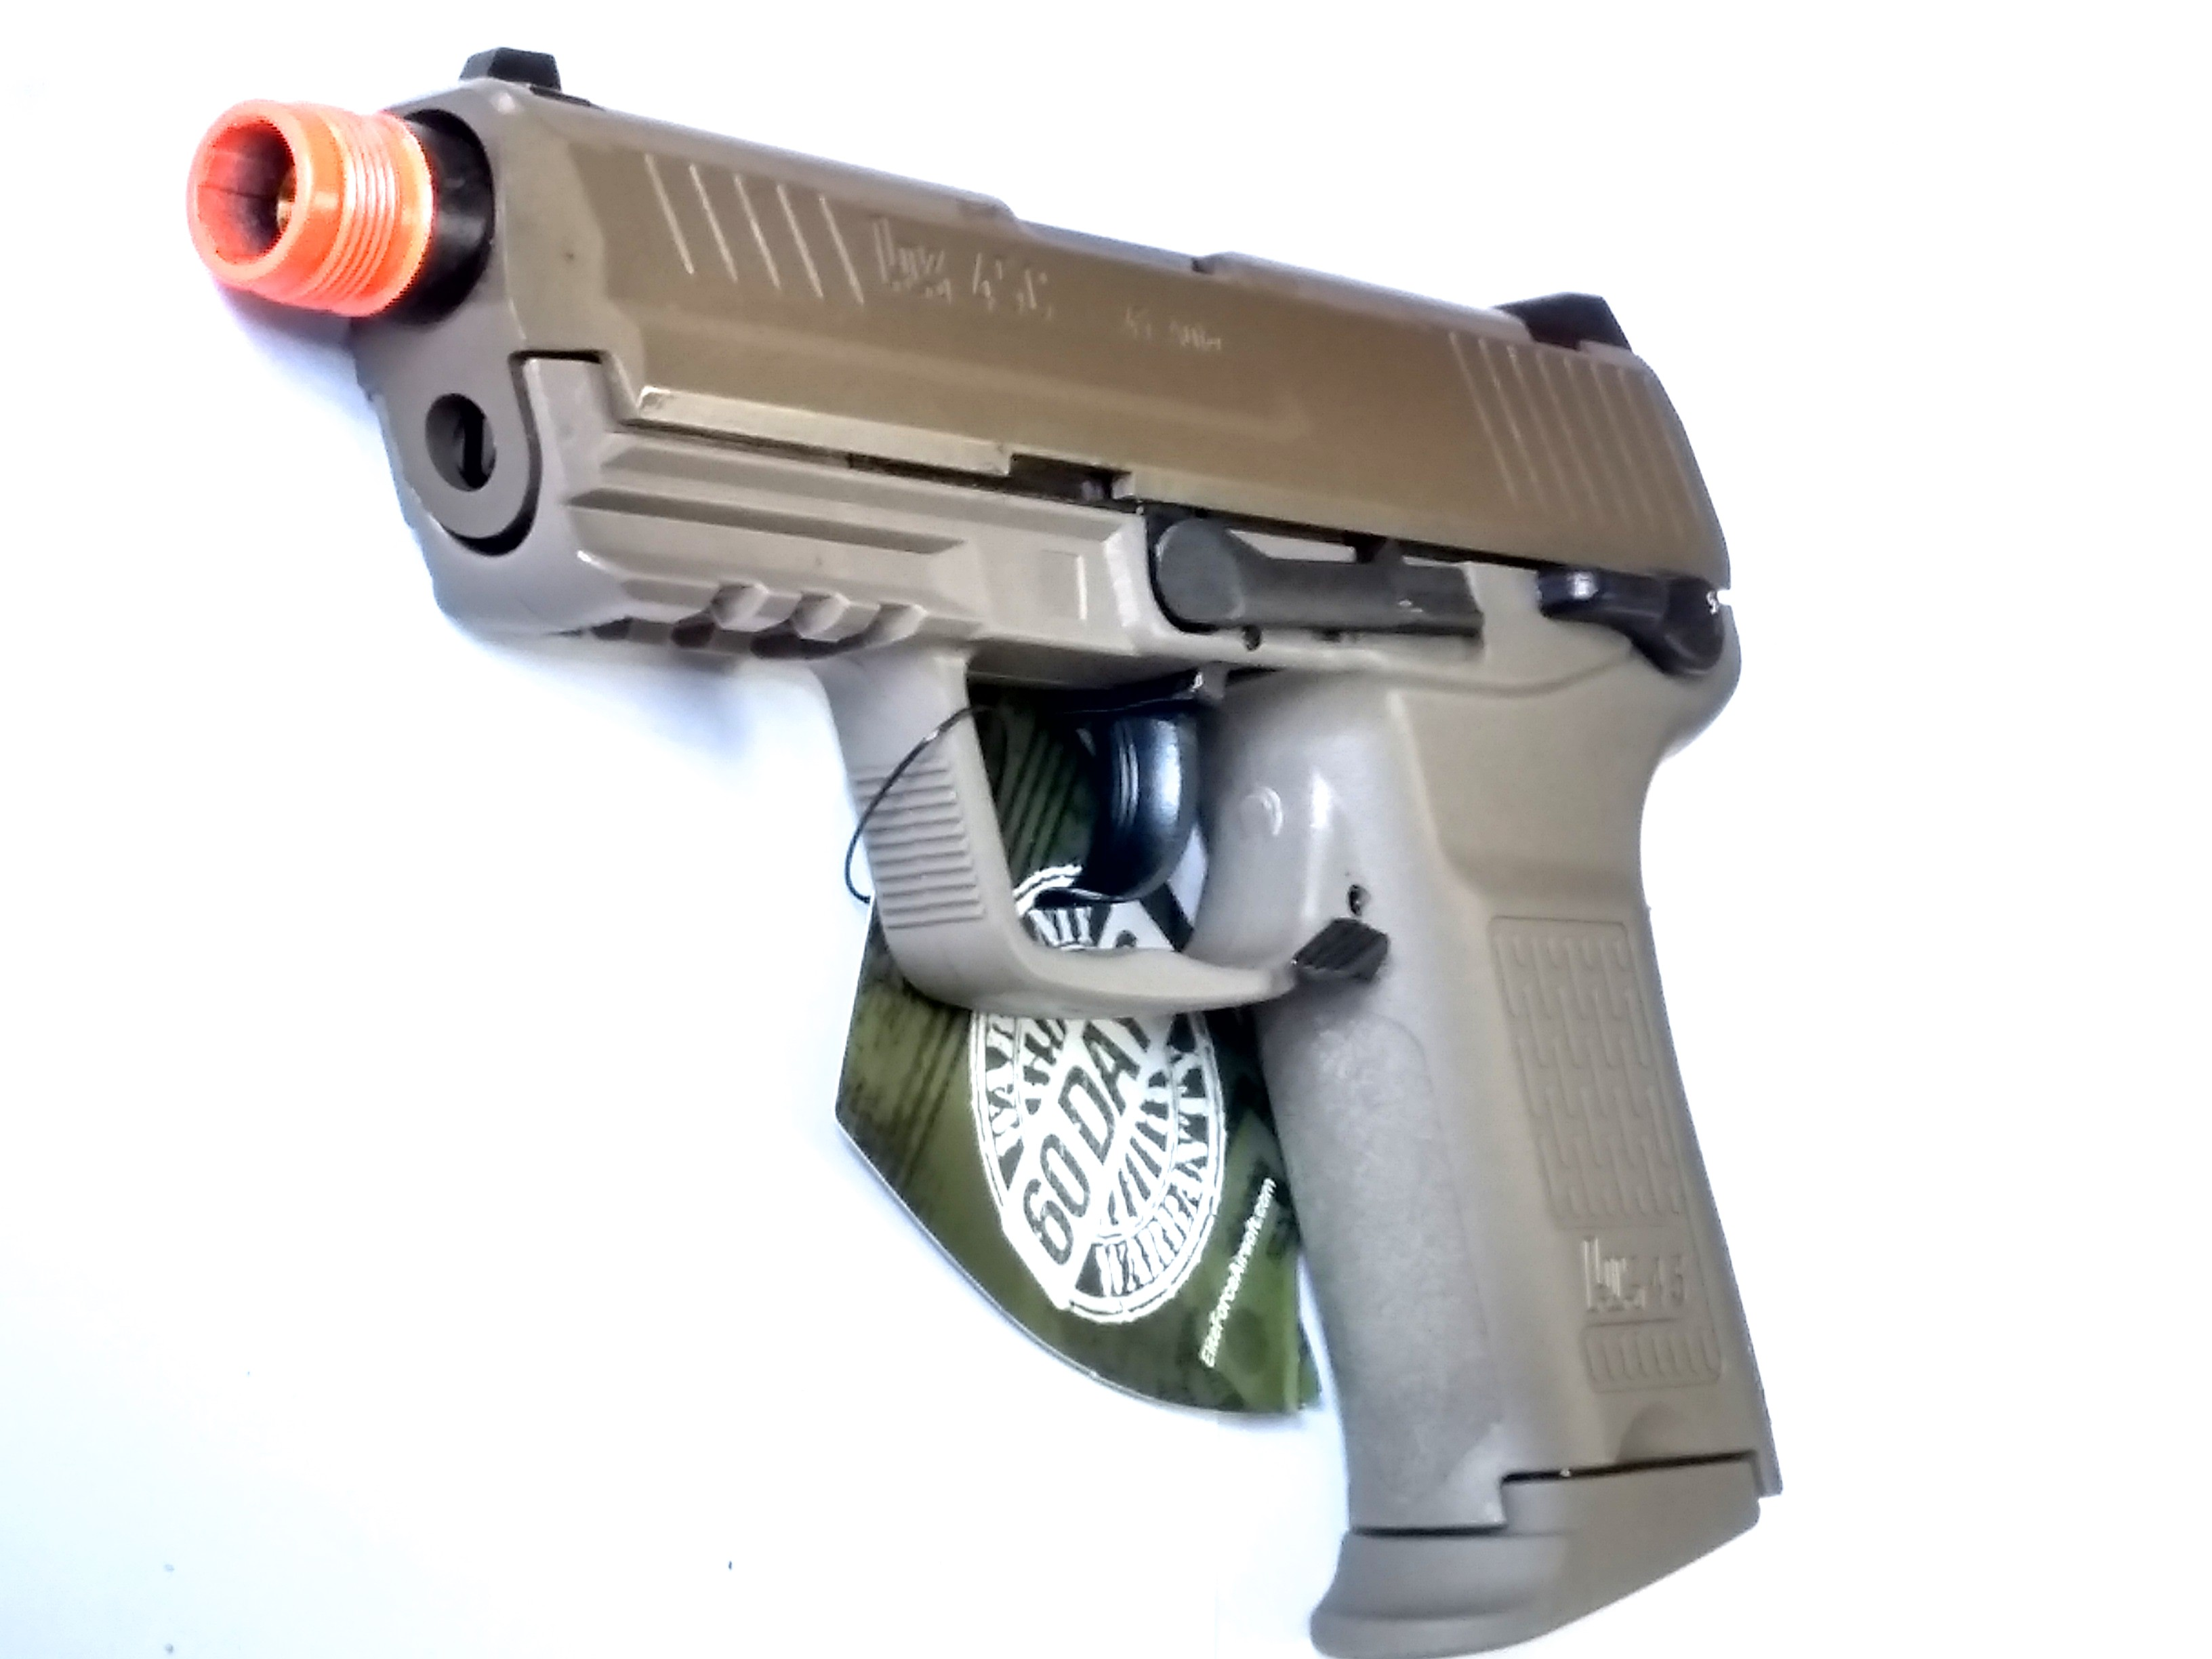 H&K45CT Compact Gas Blowback Airsoft Pistol, Tan